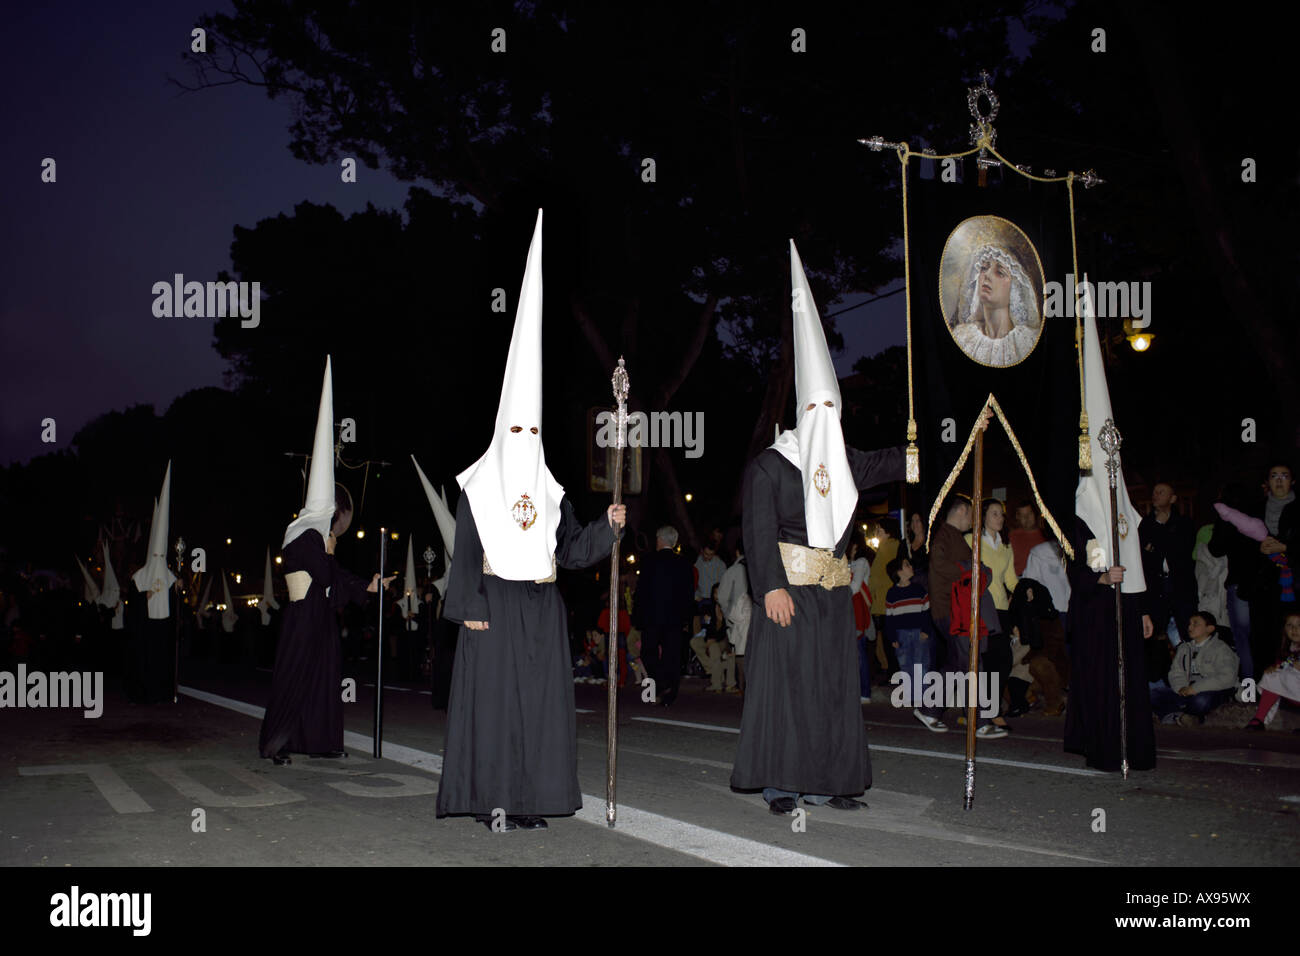 Penitents march at the Semana Santa parade, Malaga, Spain - Stock Image